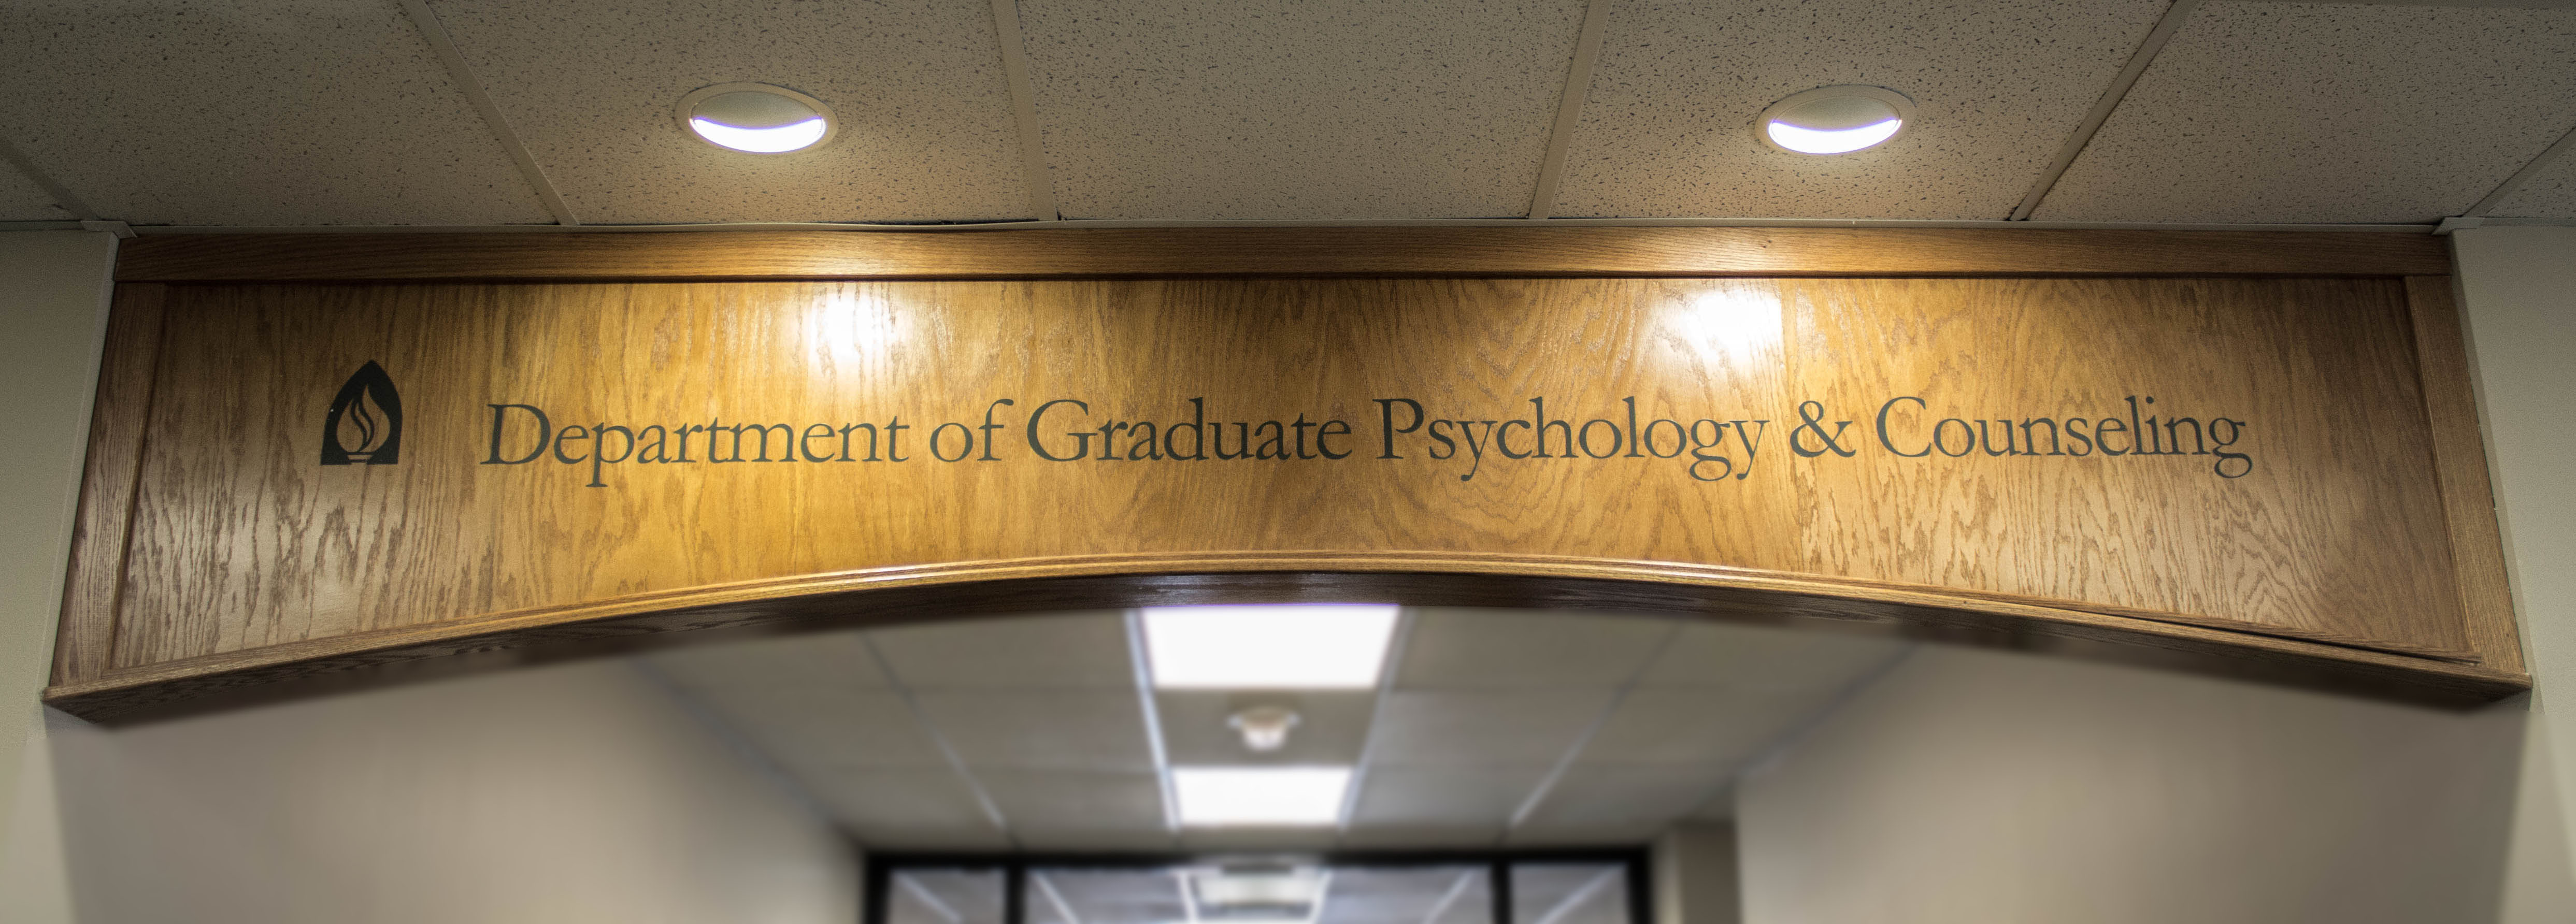 Graduate Psychology & Counseling